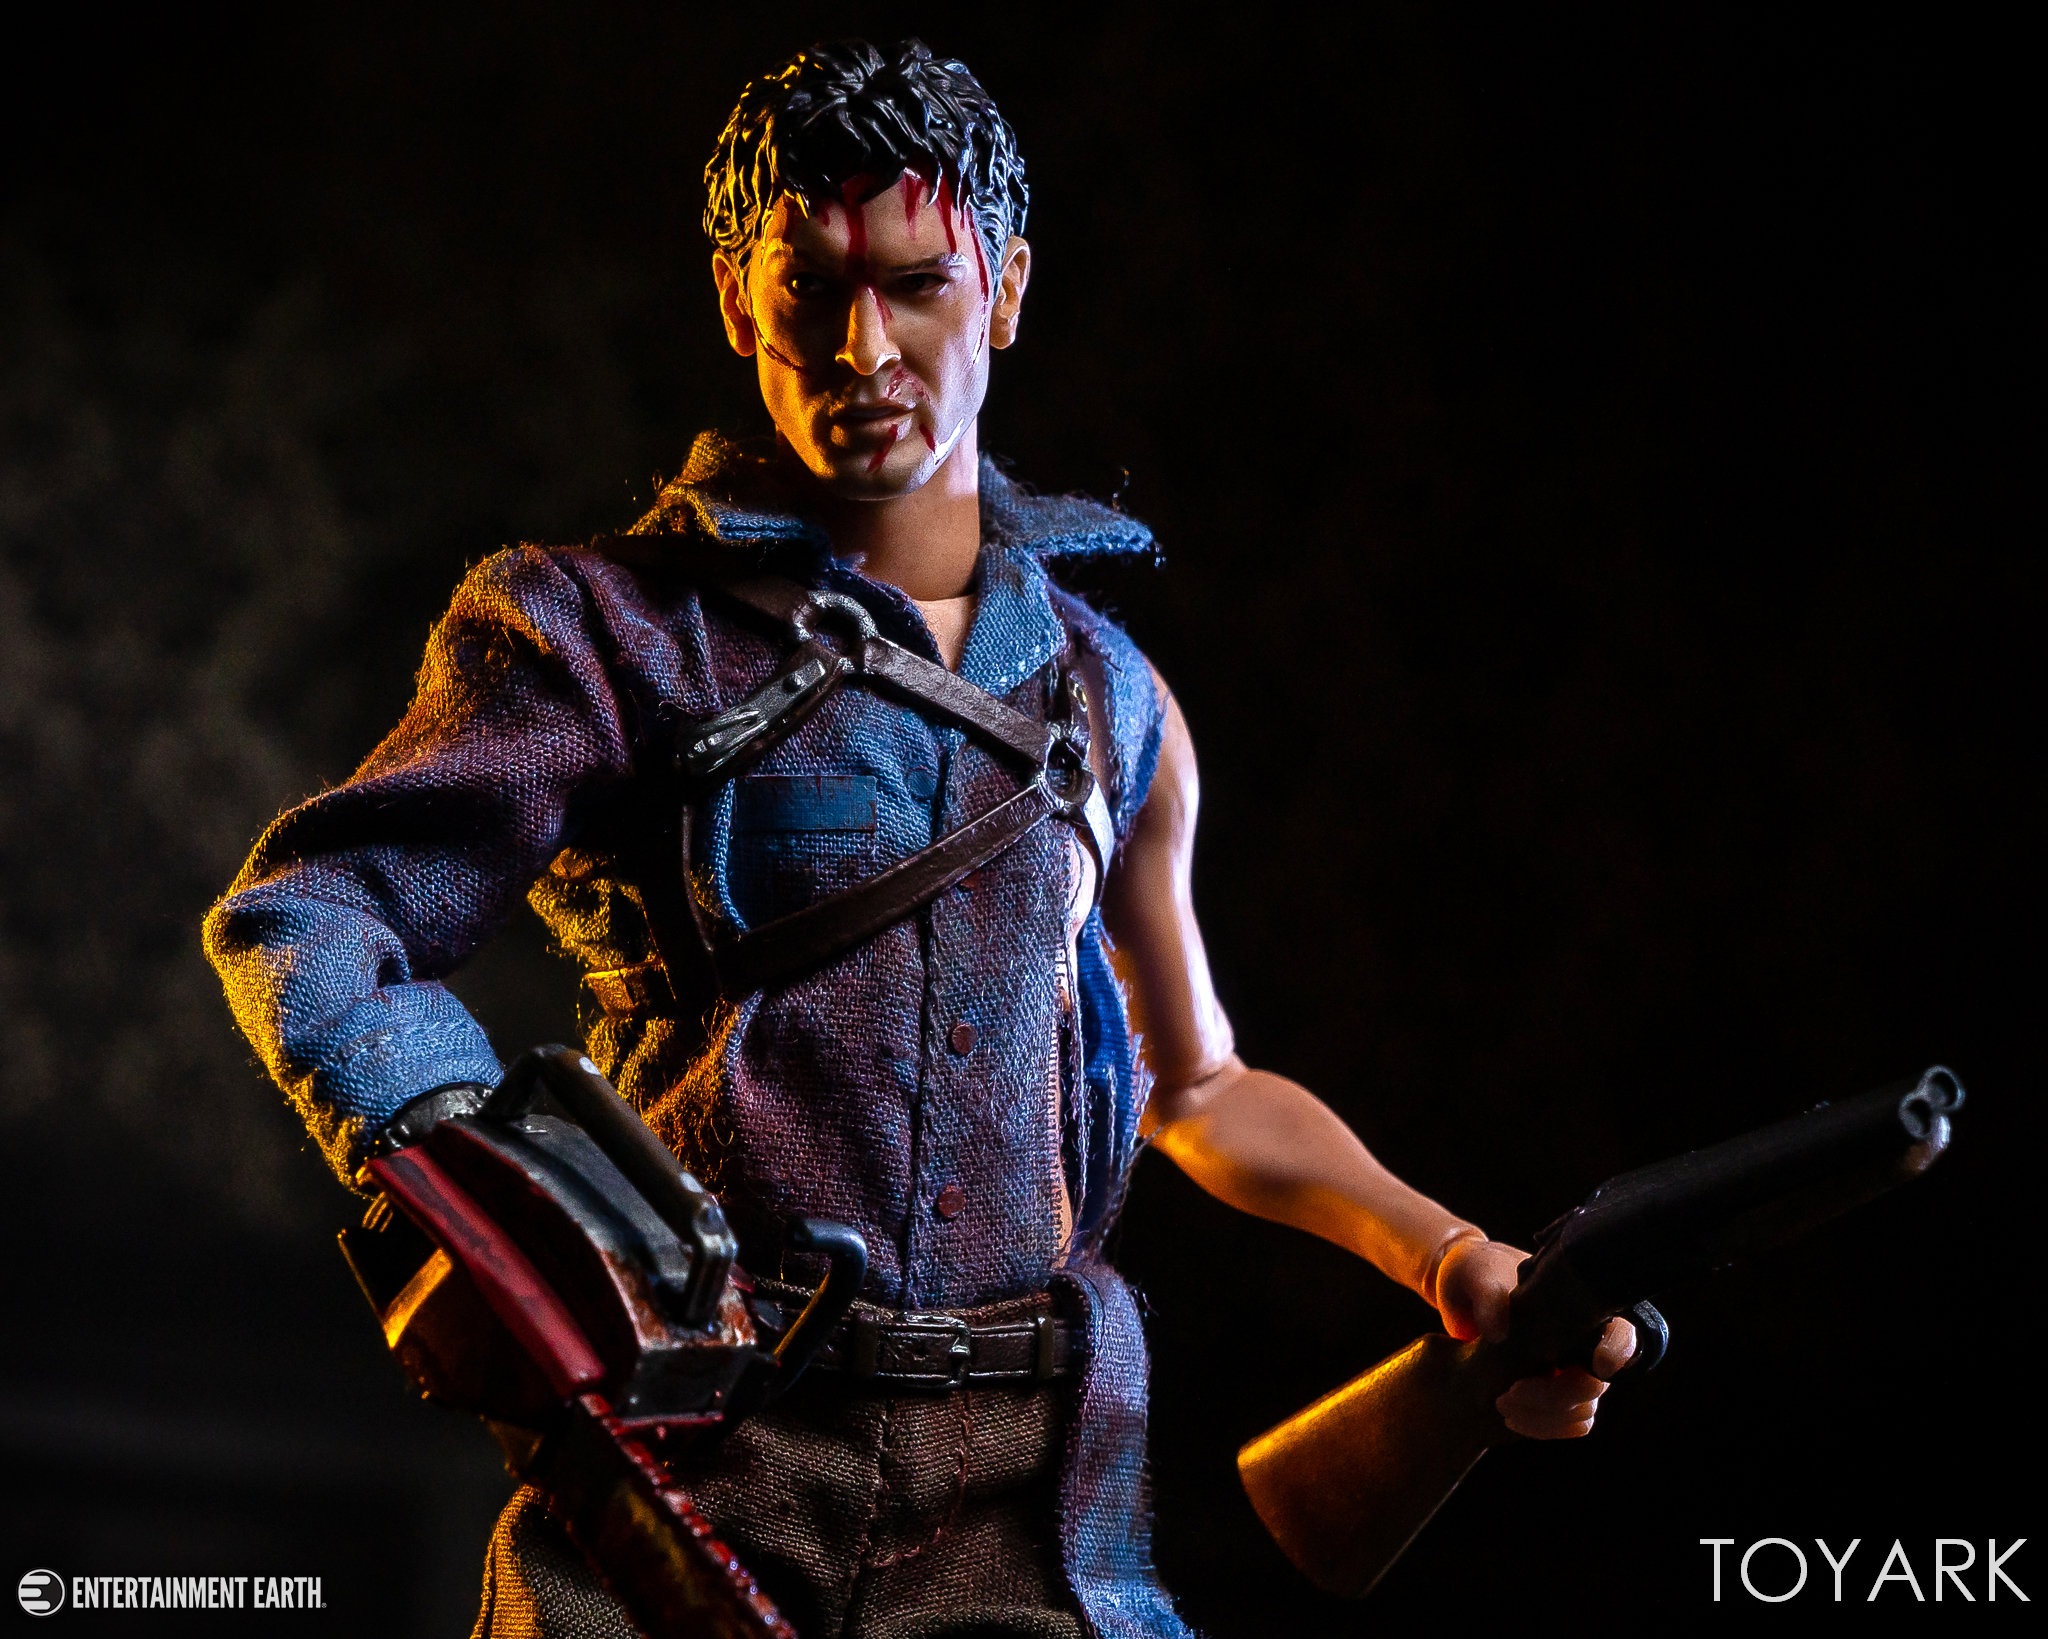 https://news.toyark.com/wp-content/uploads/sites/4/2019/01/Mezco-One12-Evil-Dead-2-Ash-036.jpg